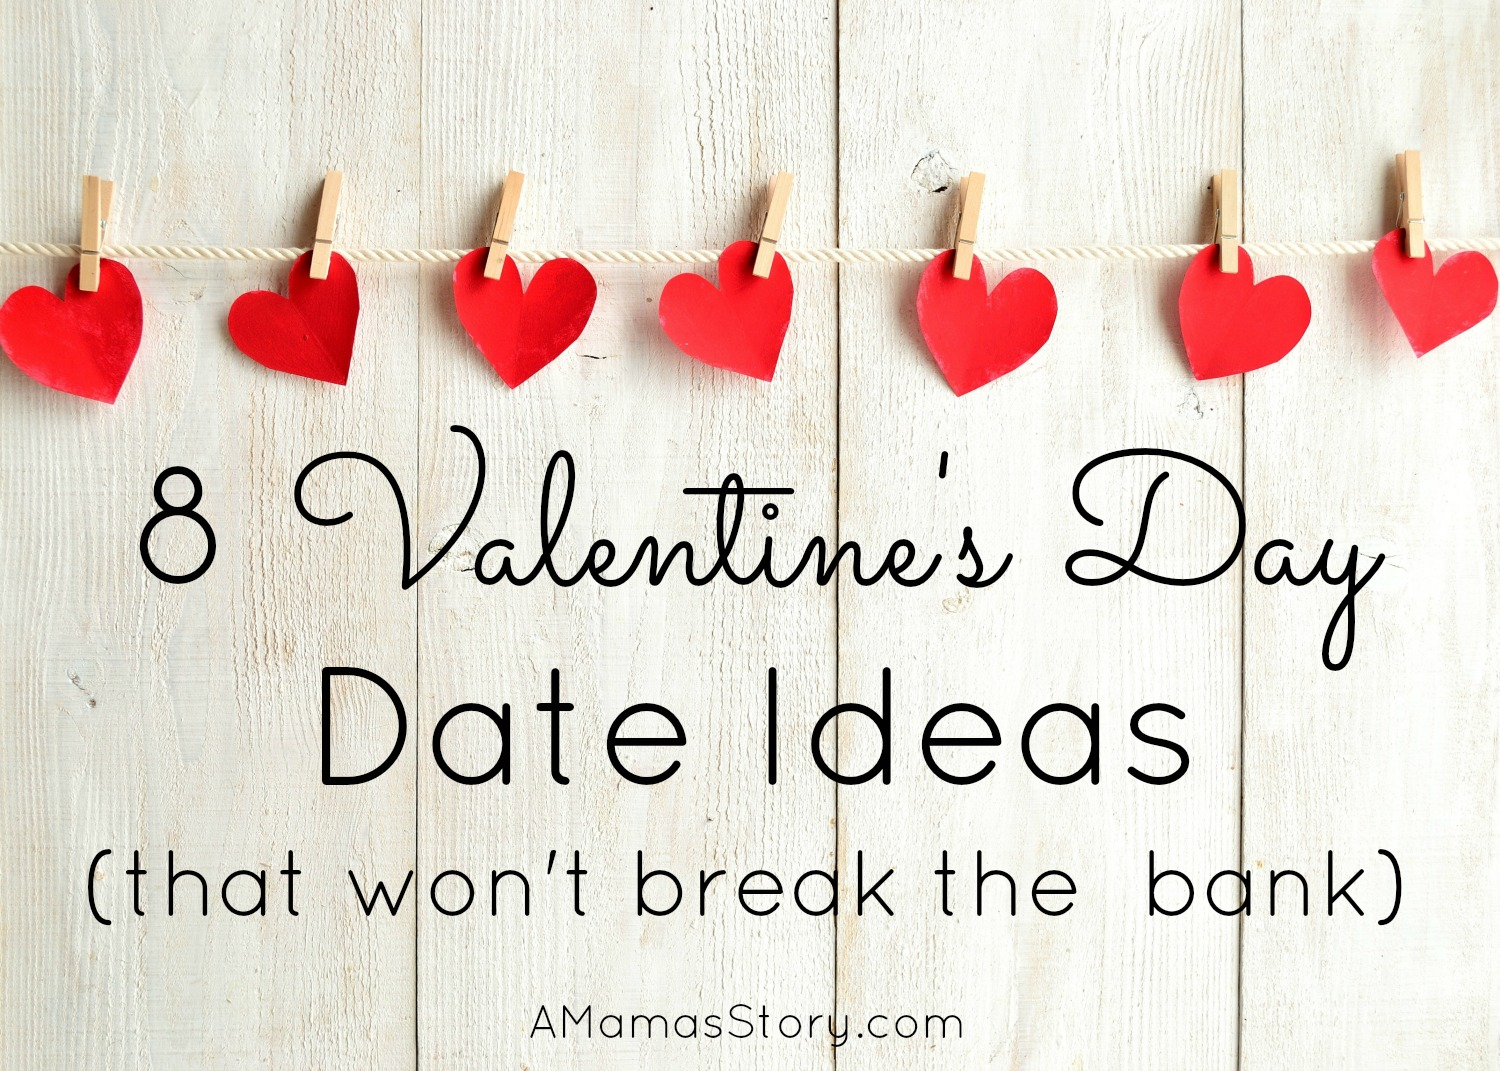 8 Valentine's Day Date Ideas